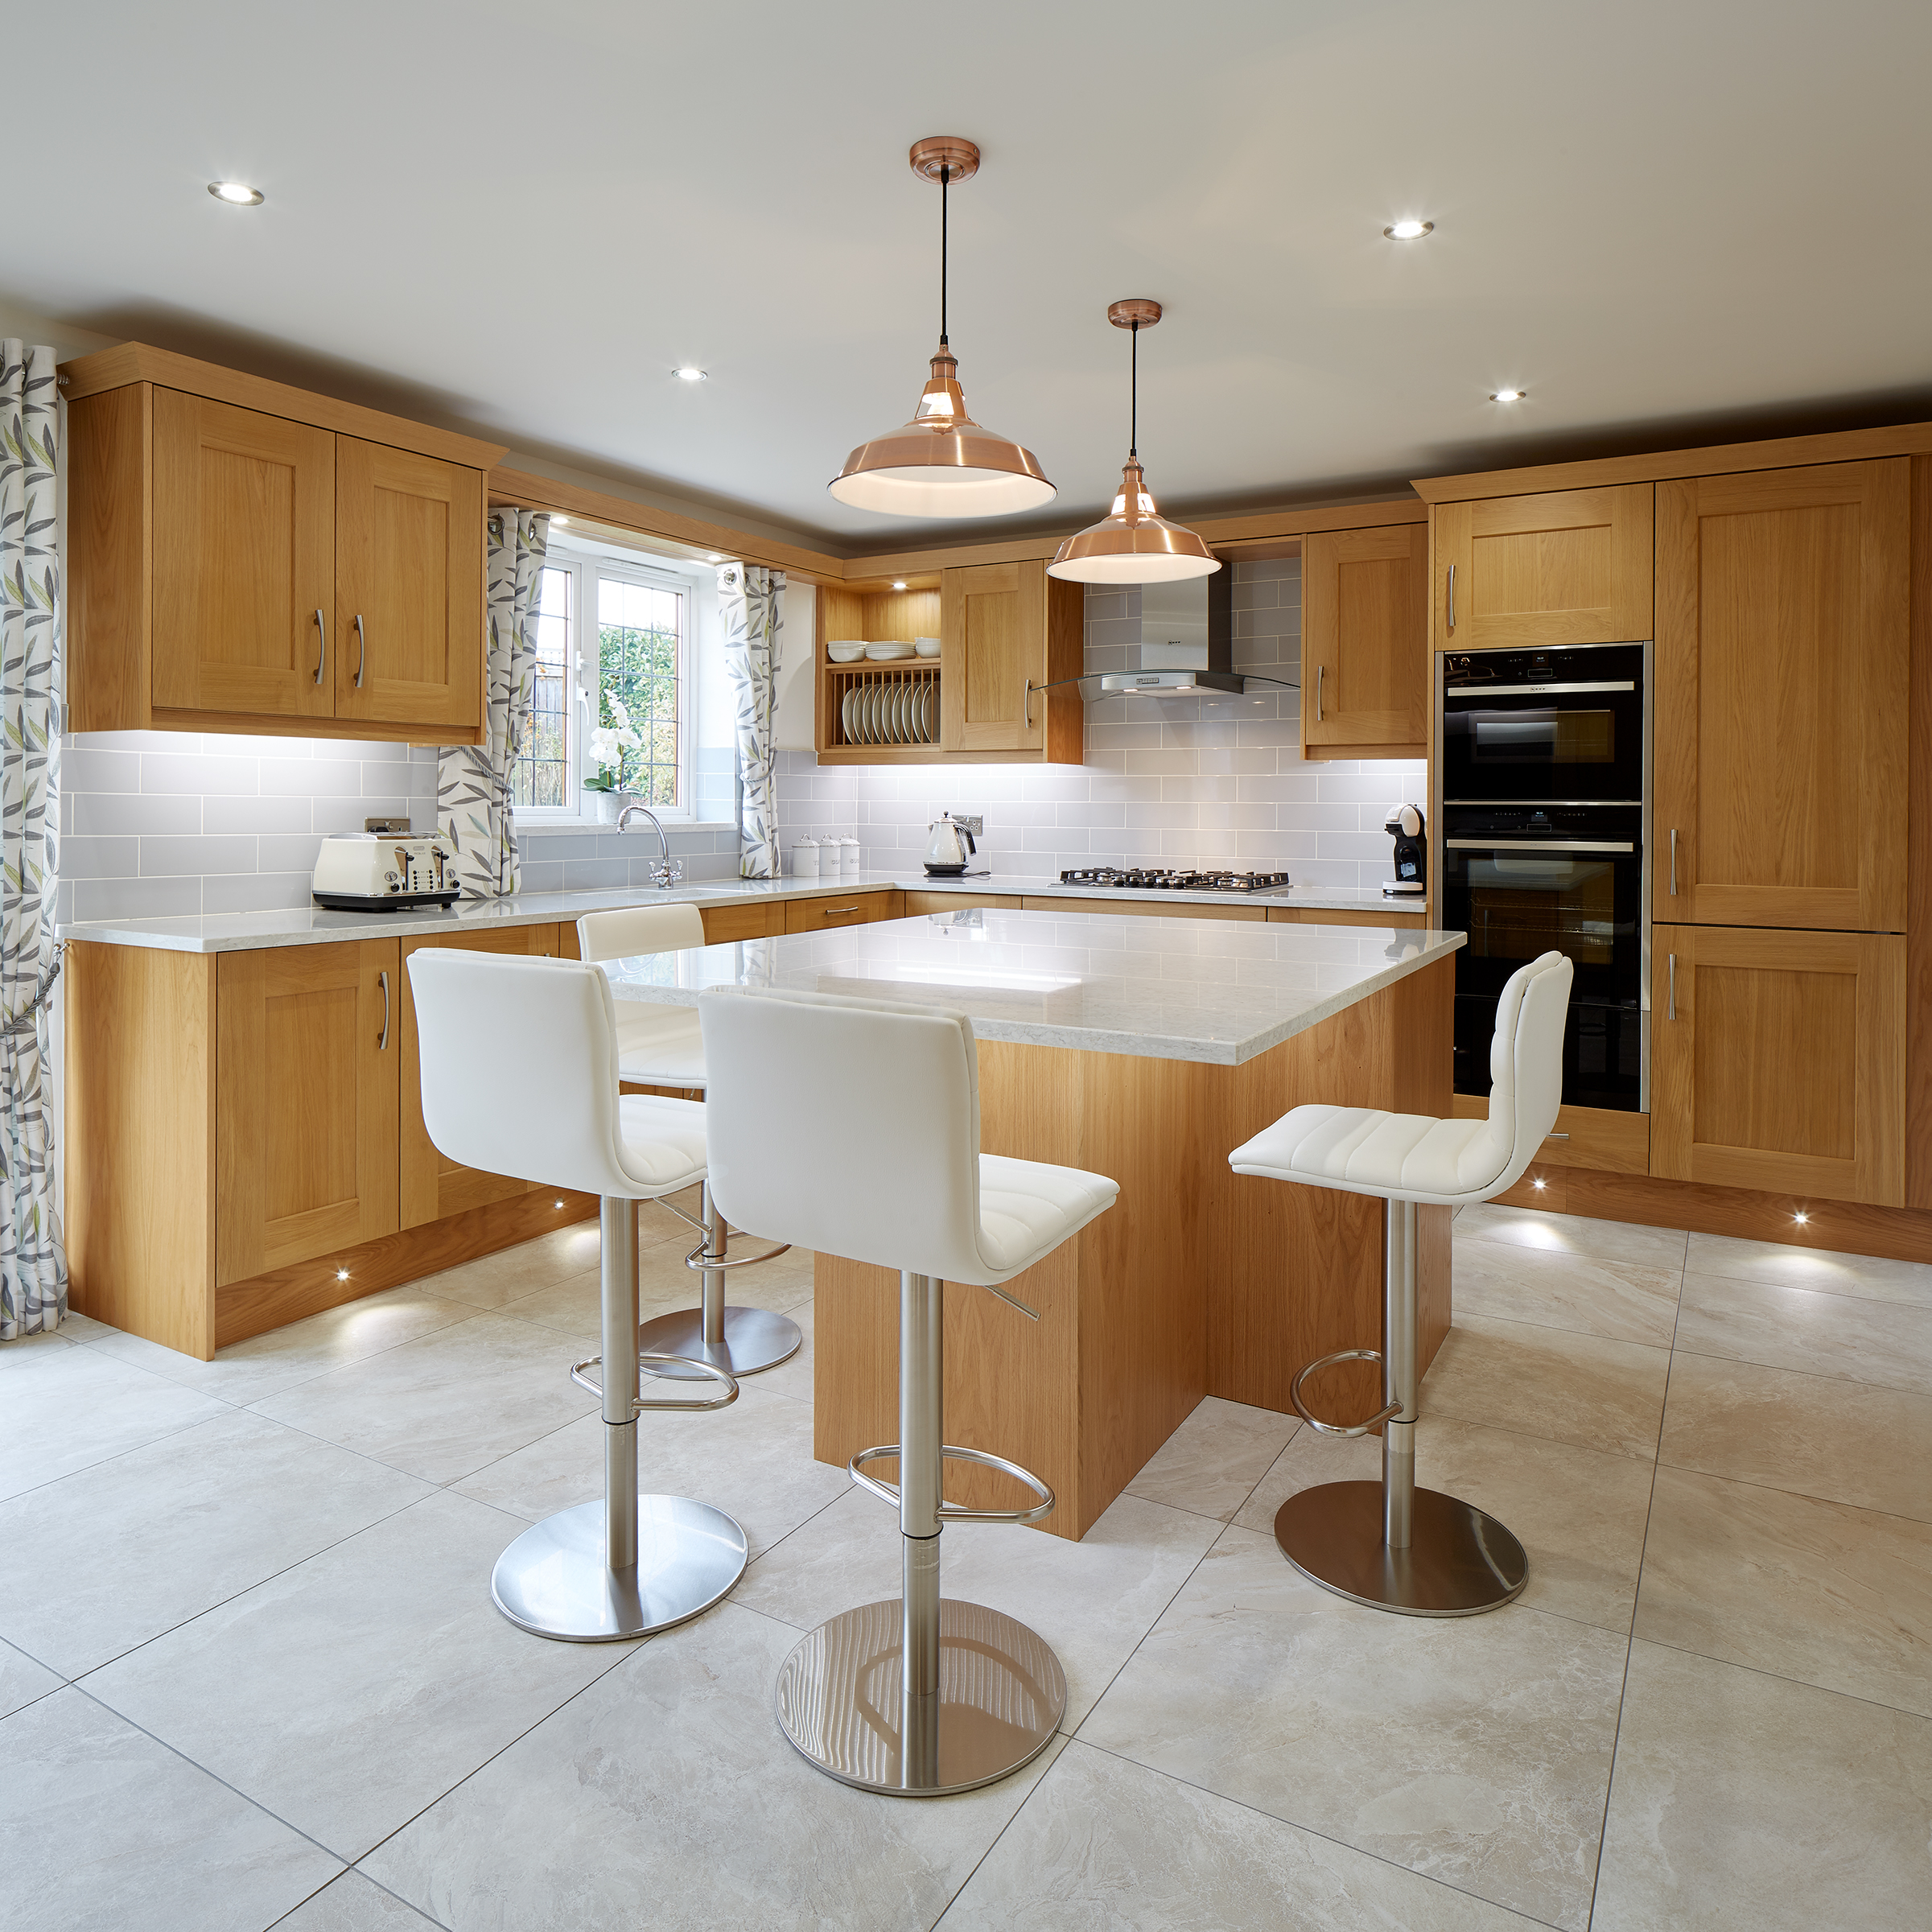 Full view of a oak hardwood kitchen with white granite worktop.